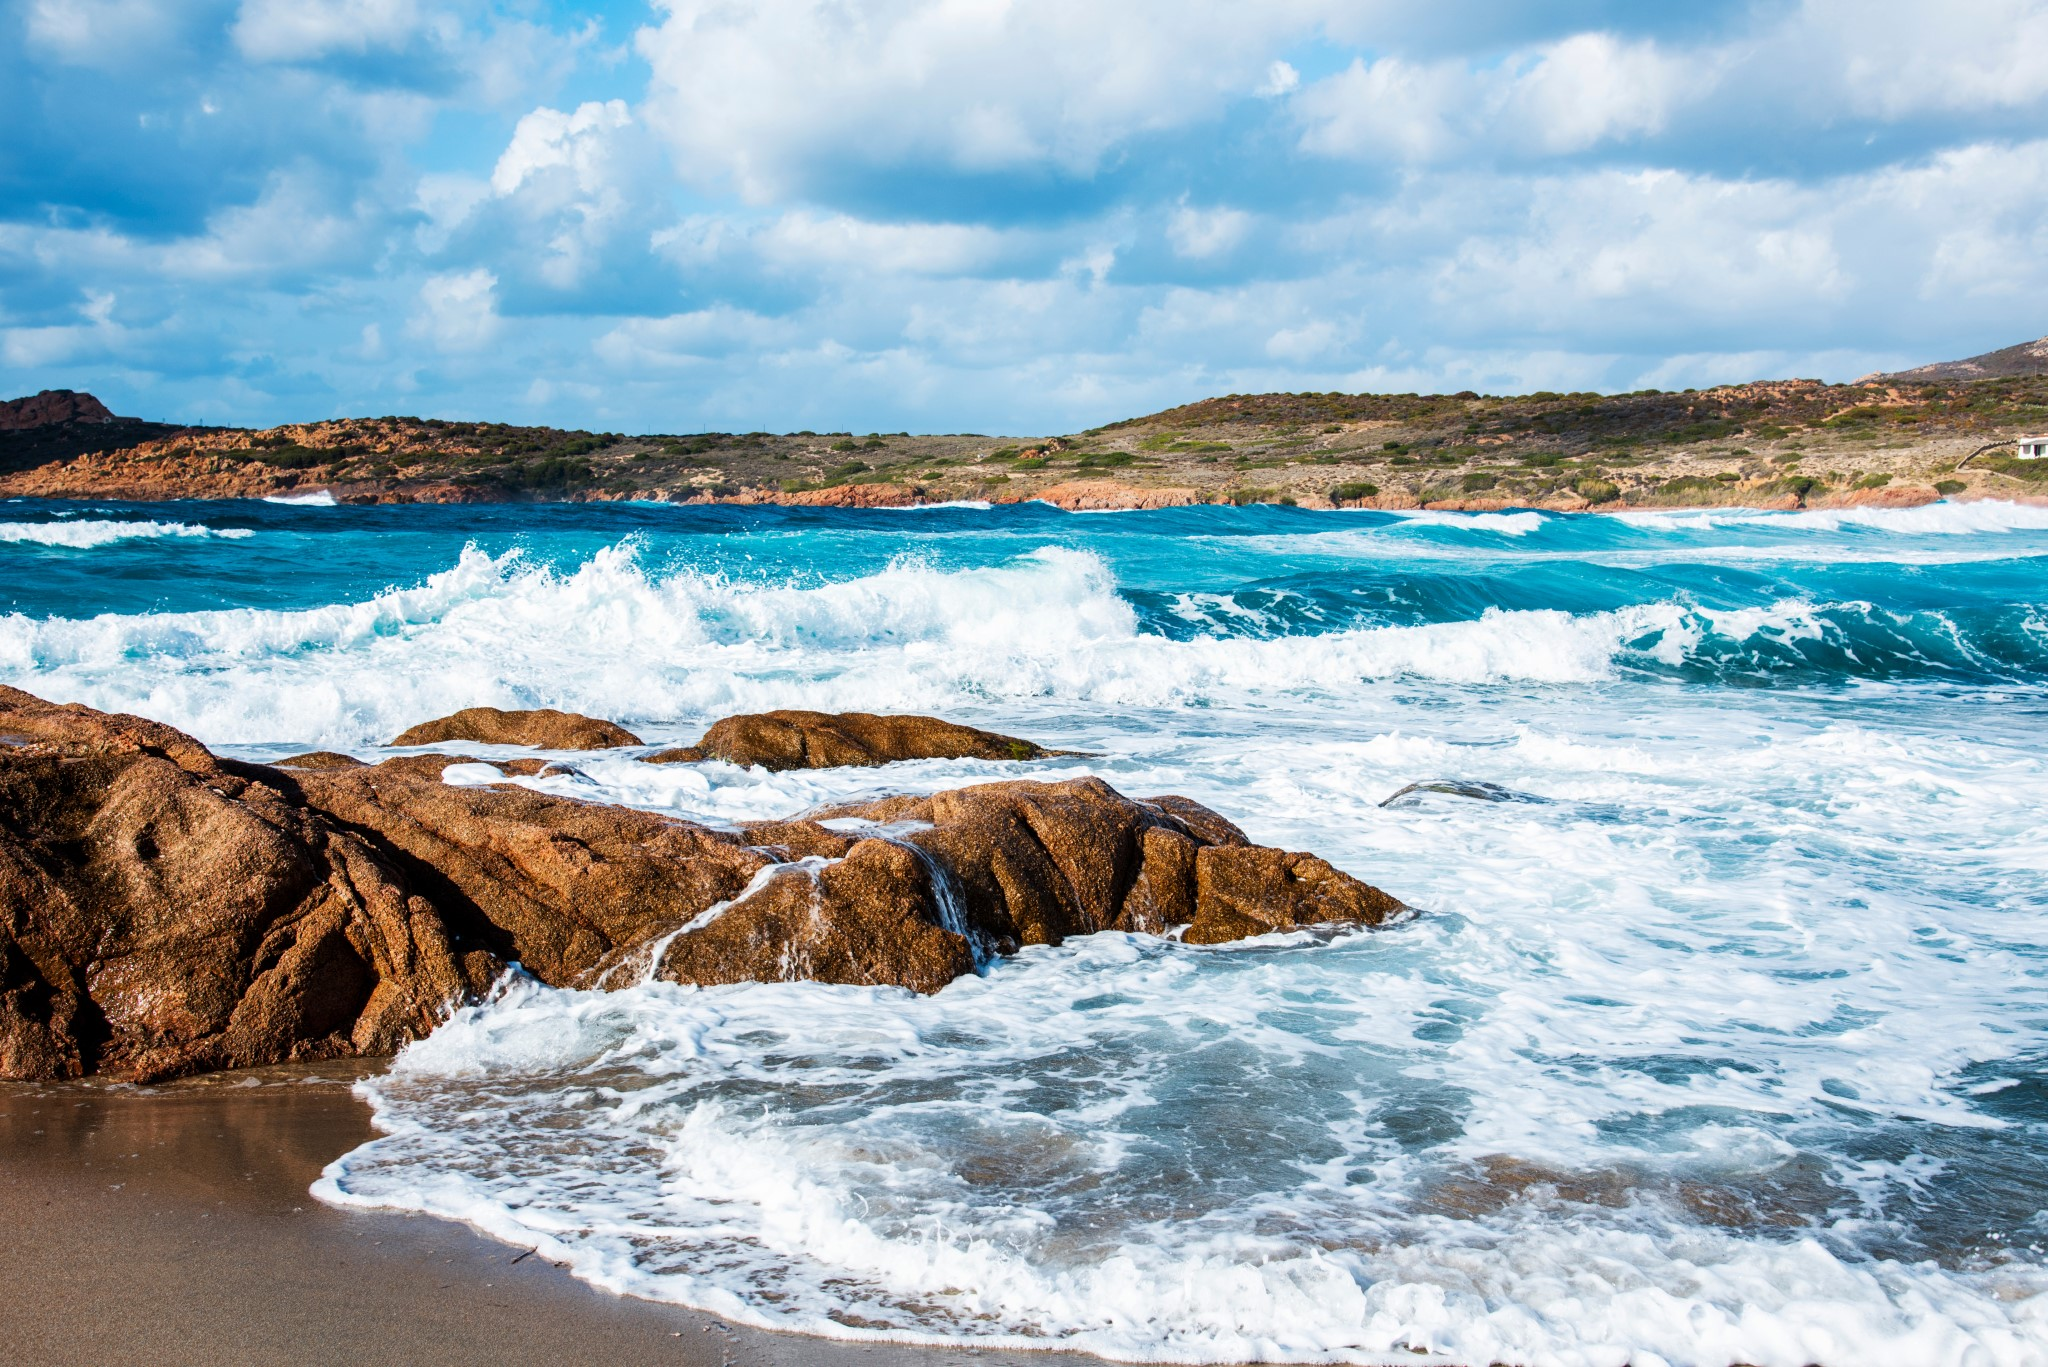 a view of the rock formations and the Mediterranean sea, with a strong swell, in La Marinedda beach, in Isola Rossa, Sardinia, Italy